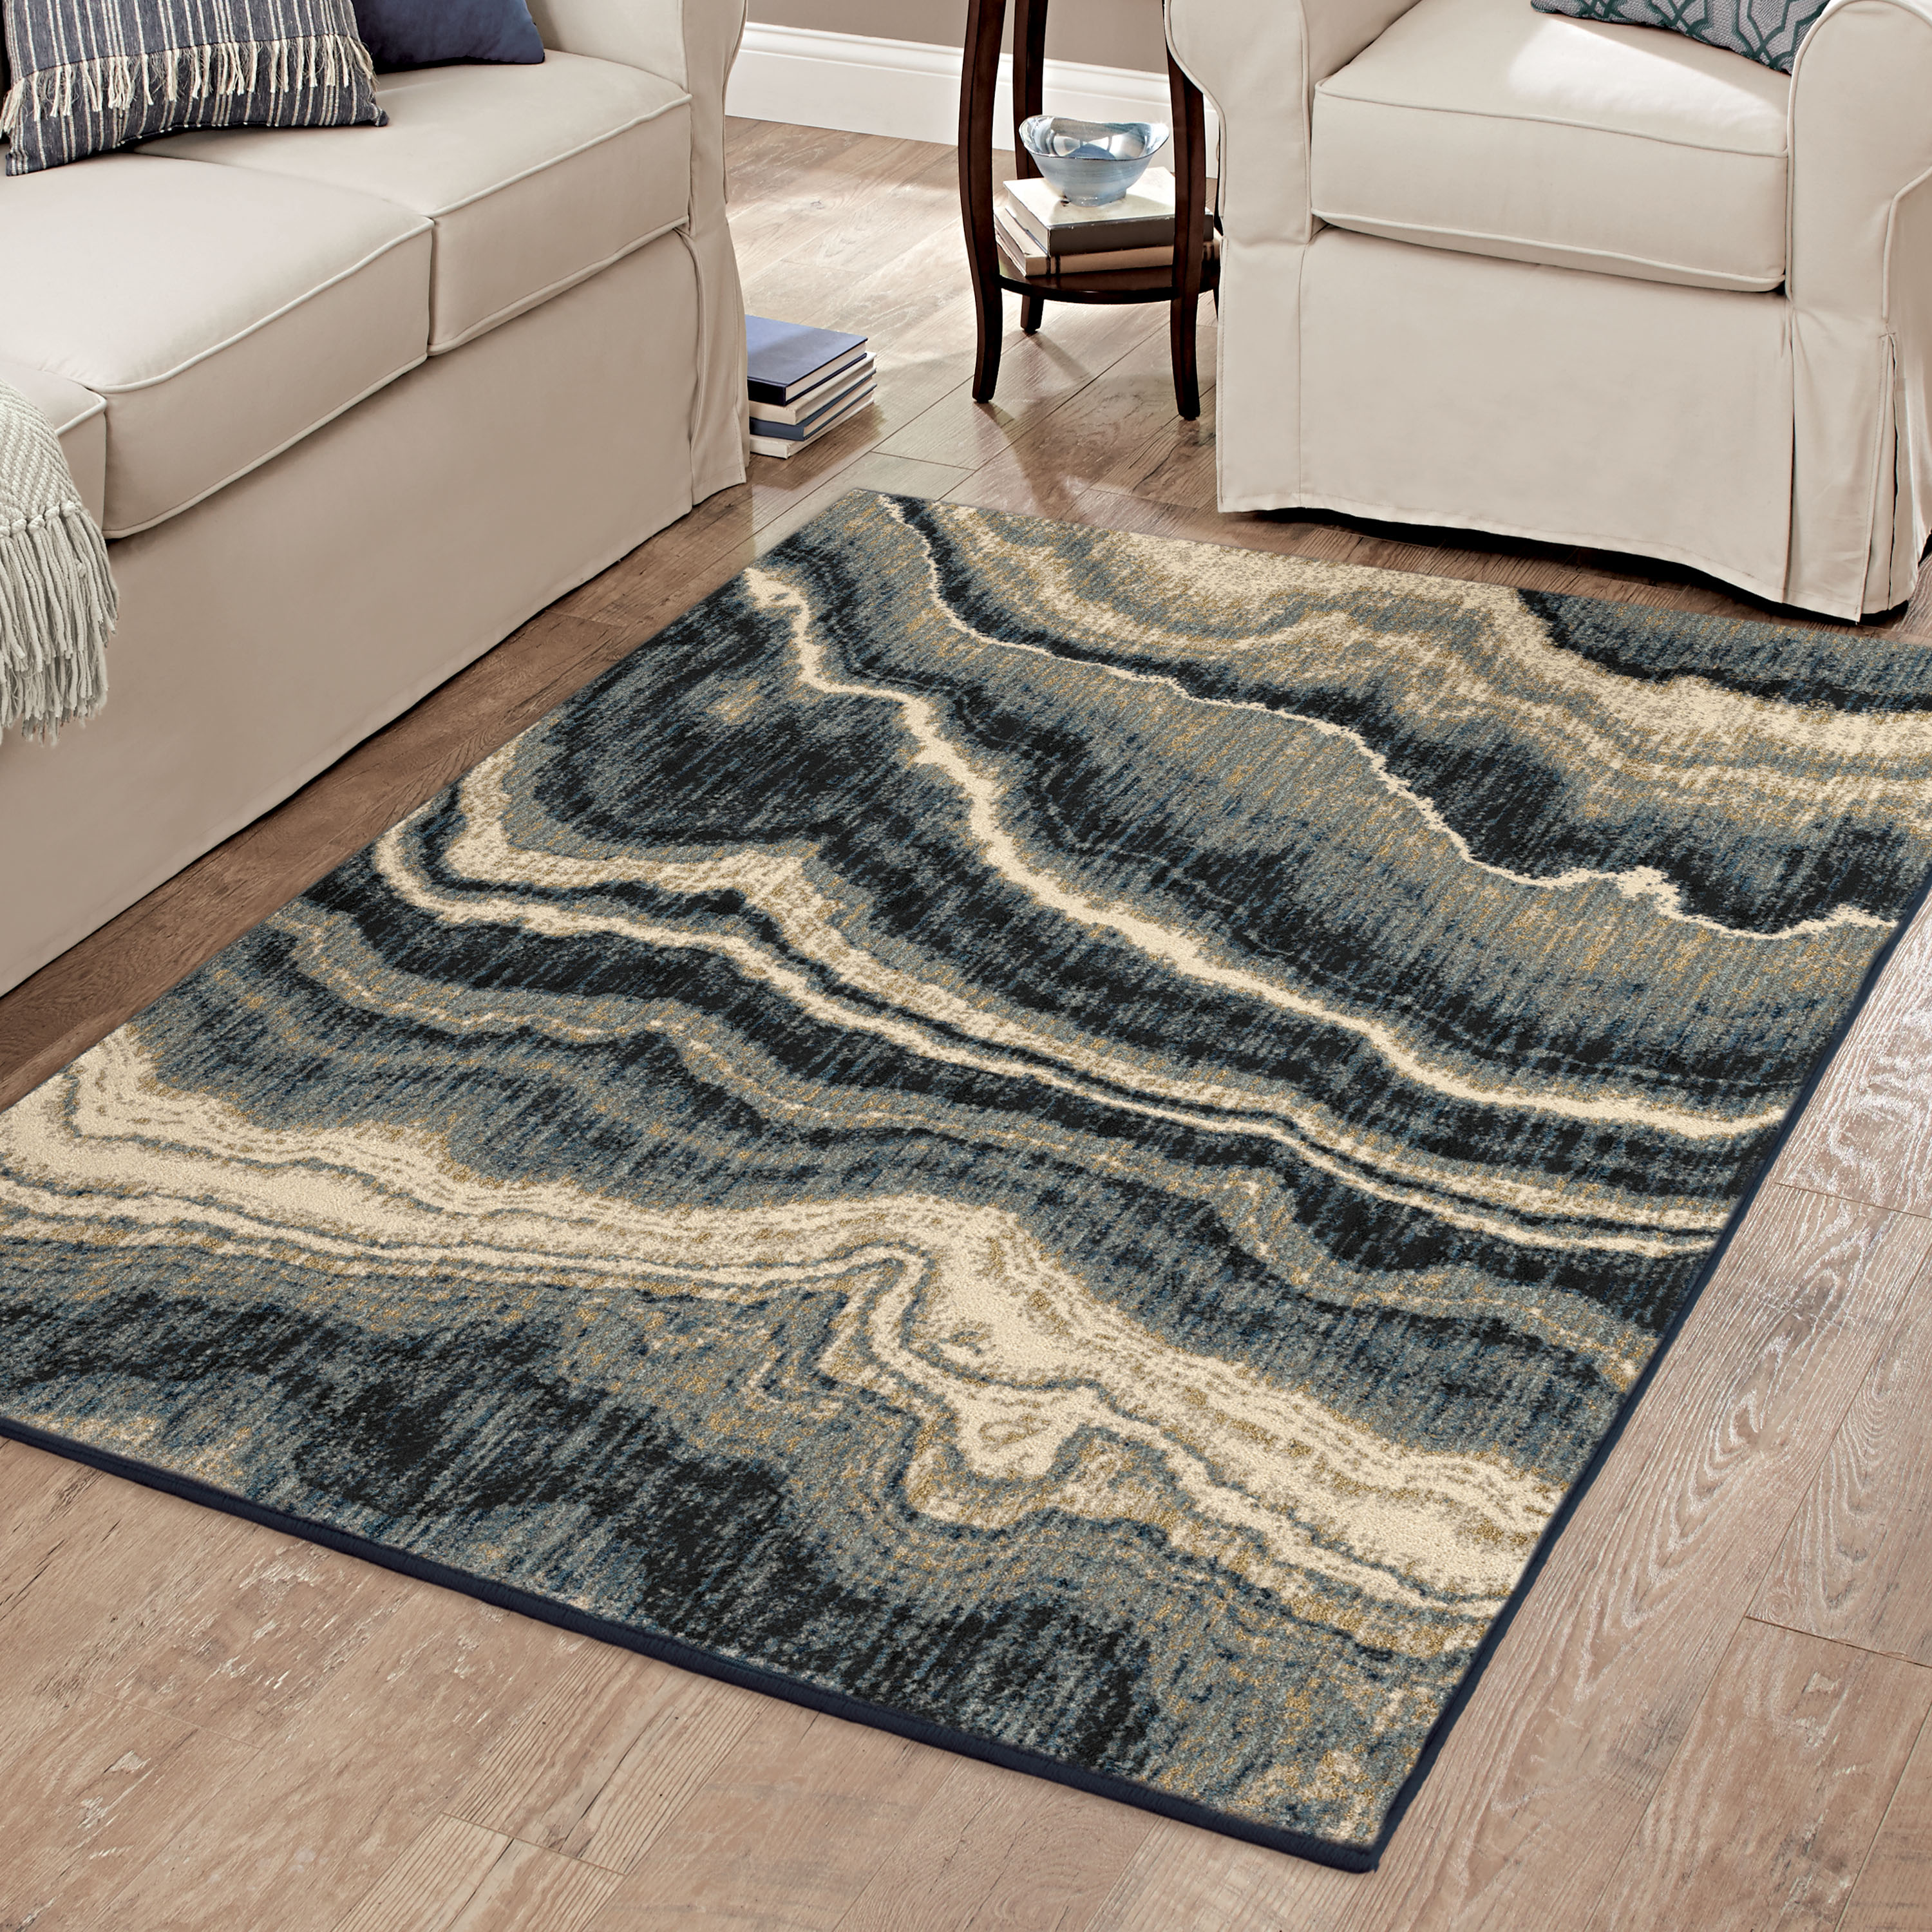 Better Homes & Gardens Midnight Marble Area Rug or Runner